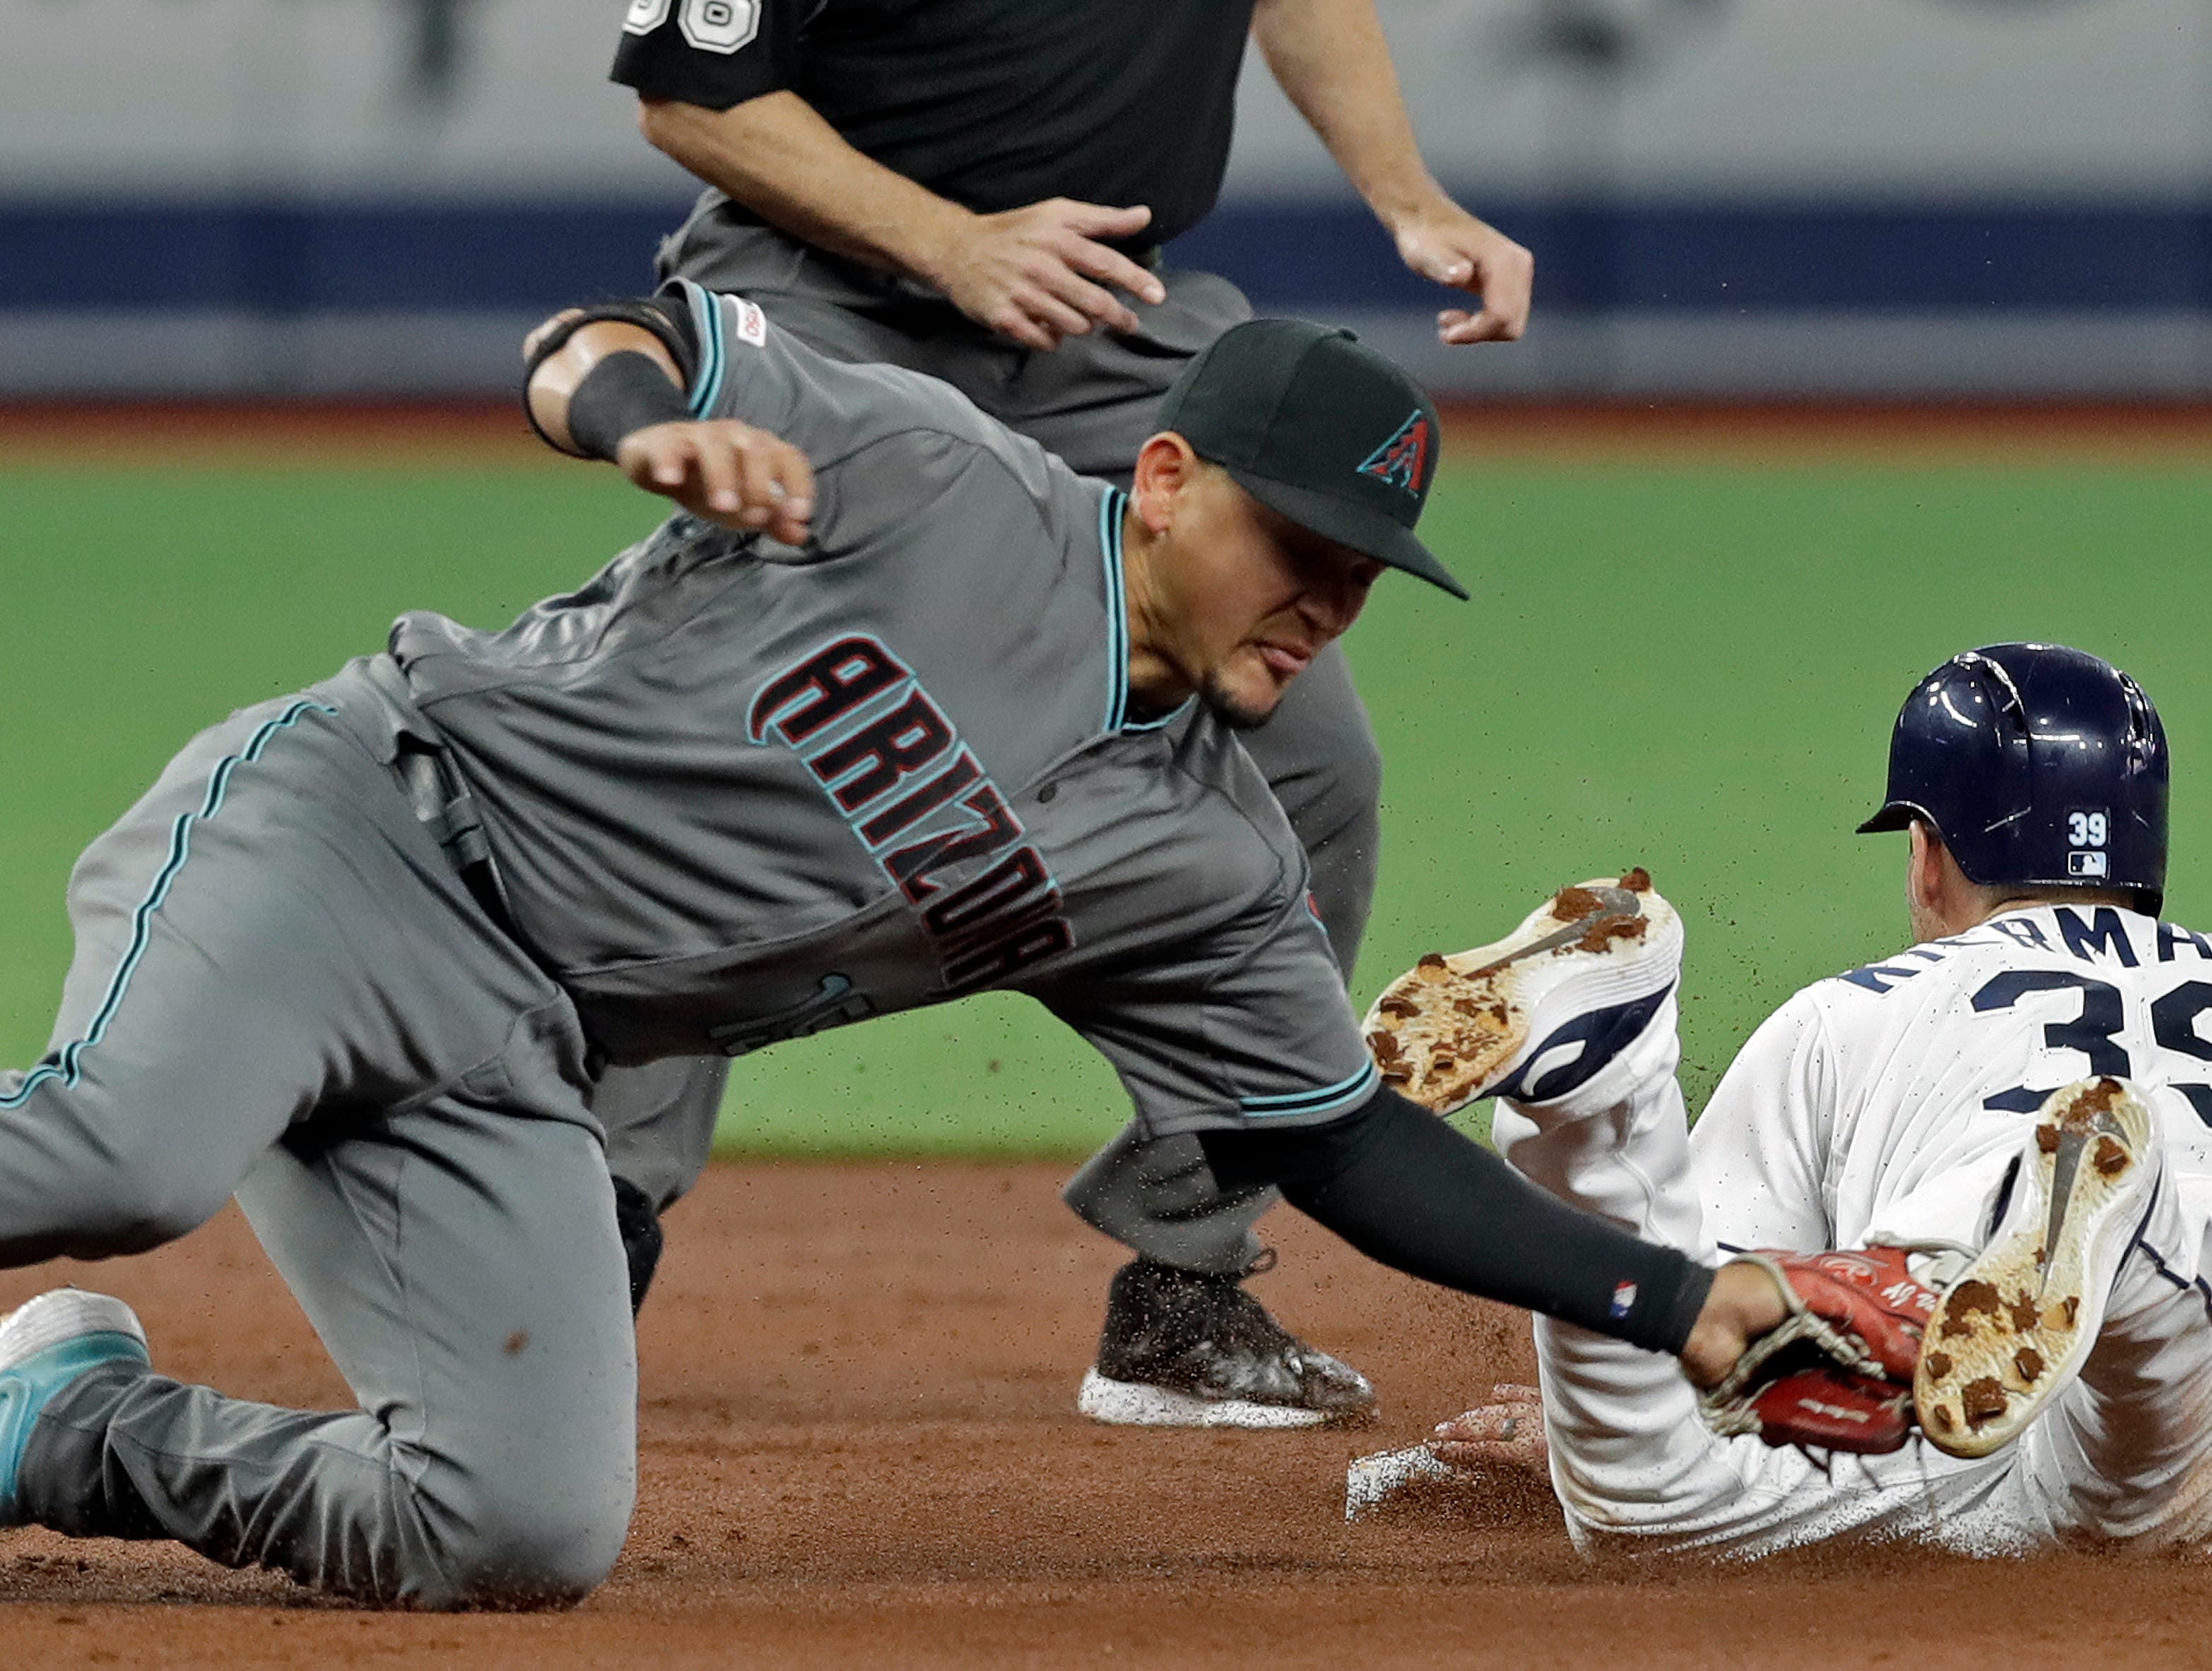 Arizona Diamondbacks' Eduardo Escobar is late with the tag as Tampa Bay Rays' Kevin Kiermaier (39) steals second base during the second inning of a baseball game Tuesday, May 7, 2019, in St. Petersburg, Fla. (AP Photo/Chris O'Meara)